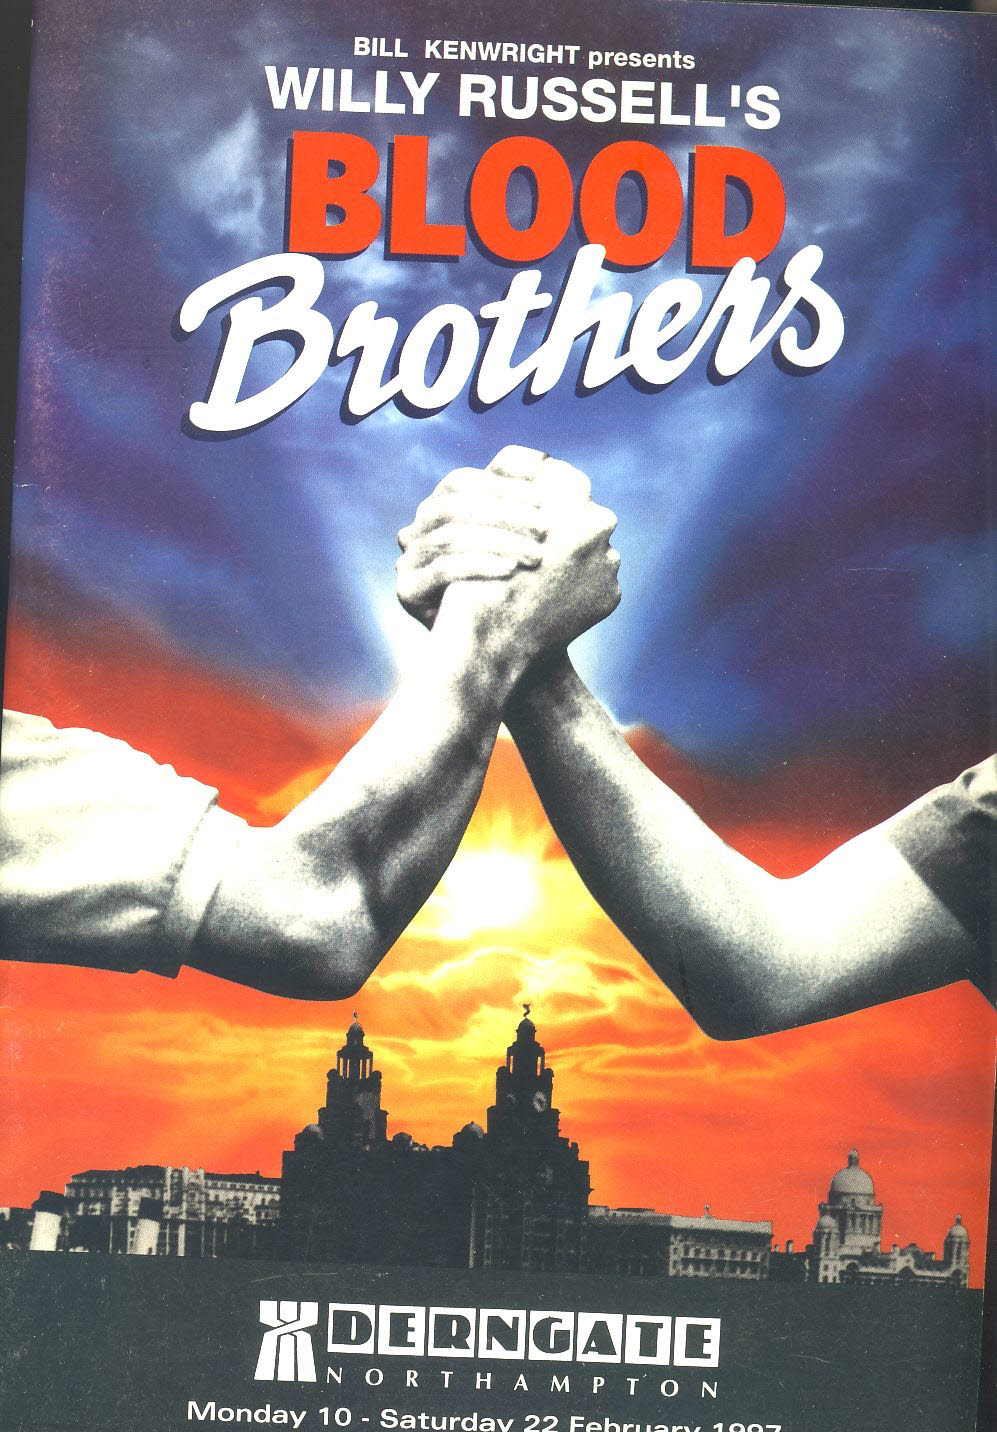 BLOOD BROTHERS 1997 DERNGATE Northampton theatre Programme Stephanie Lawrence & Mike Dyer refb100841 Very Good Condition. Measure approx 17.5cm x 25cm